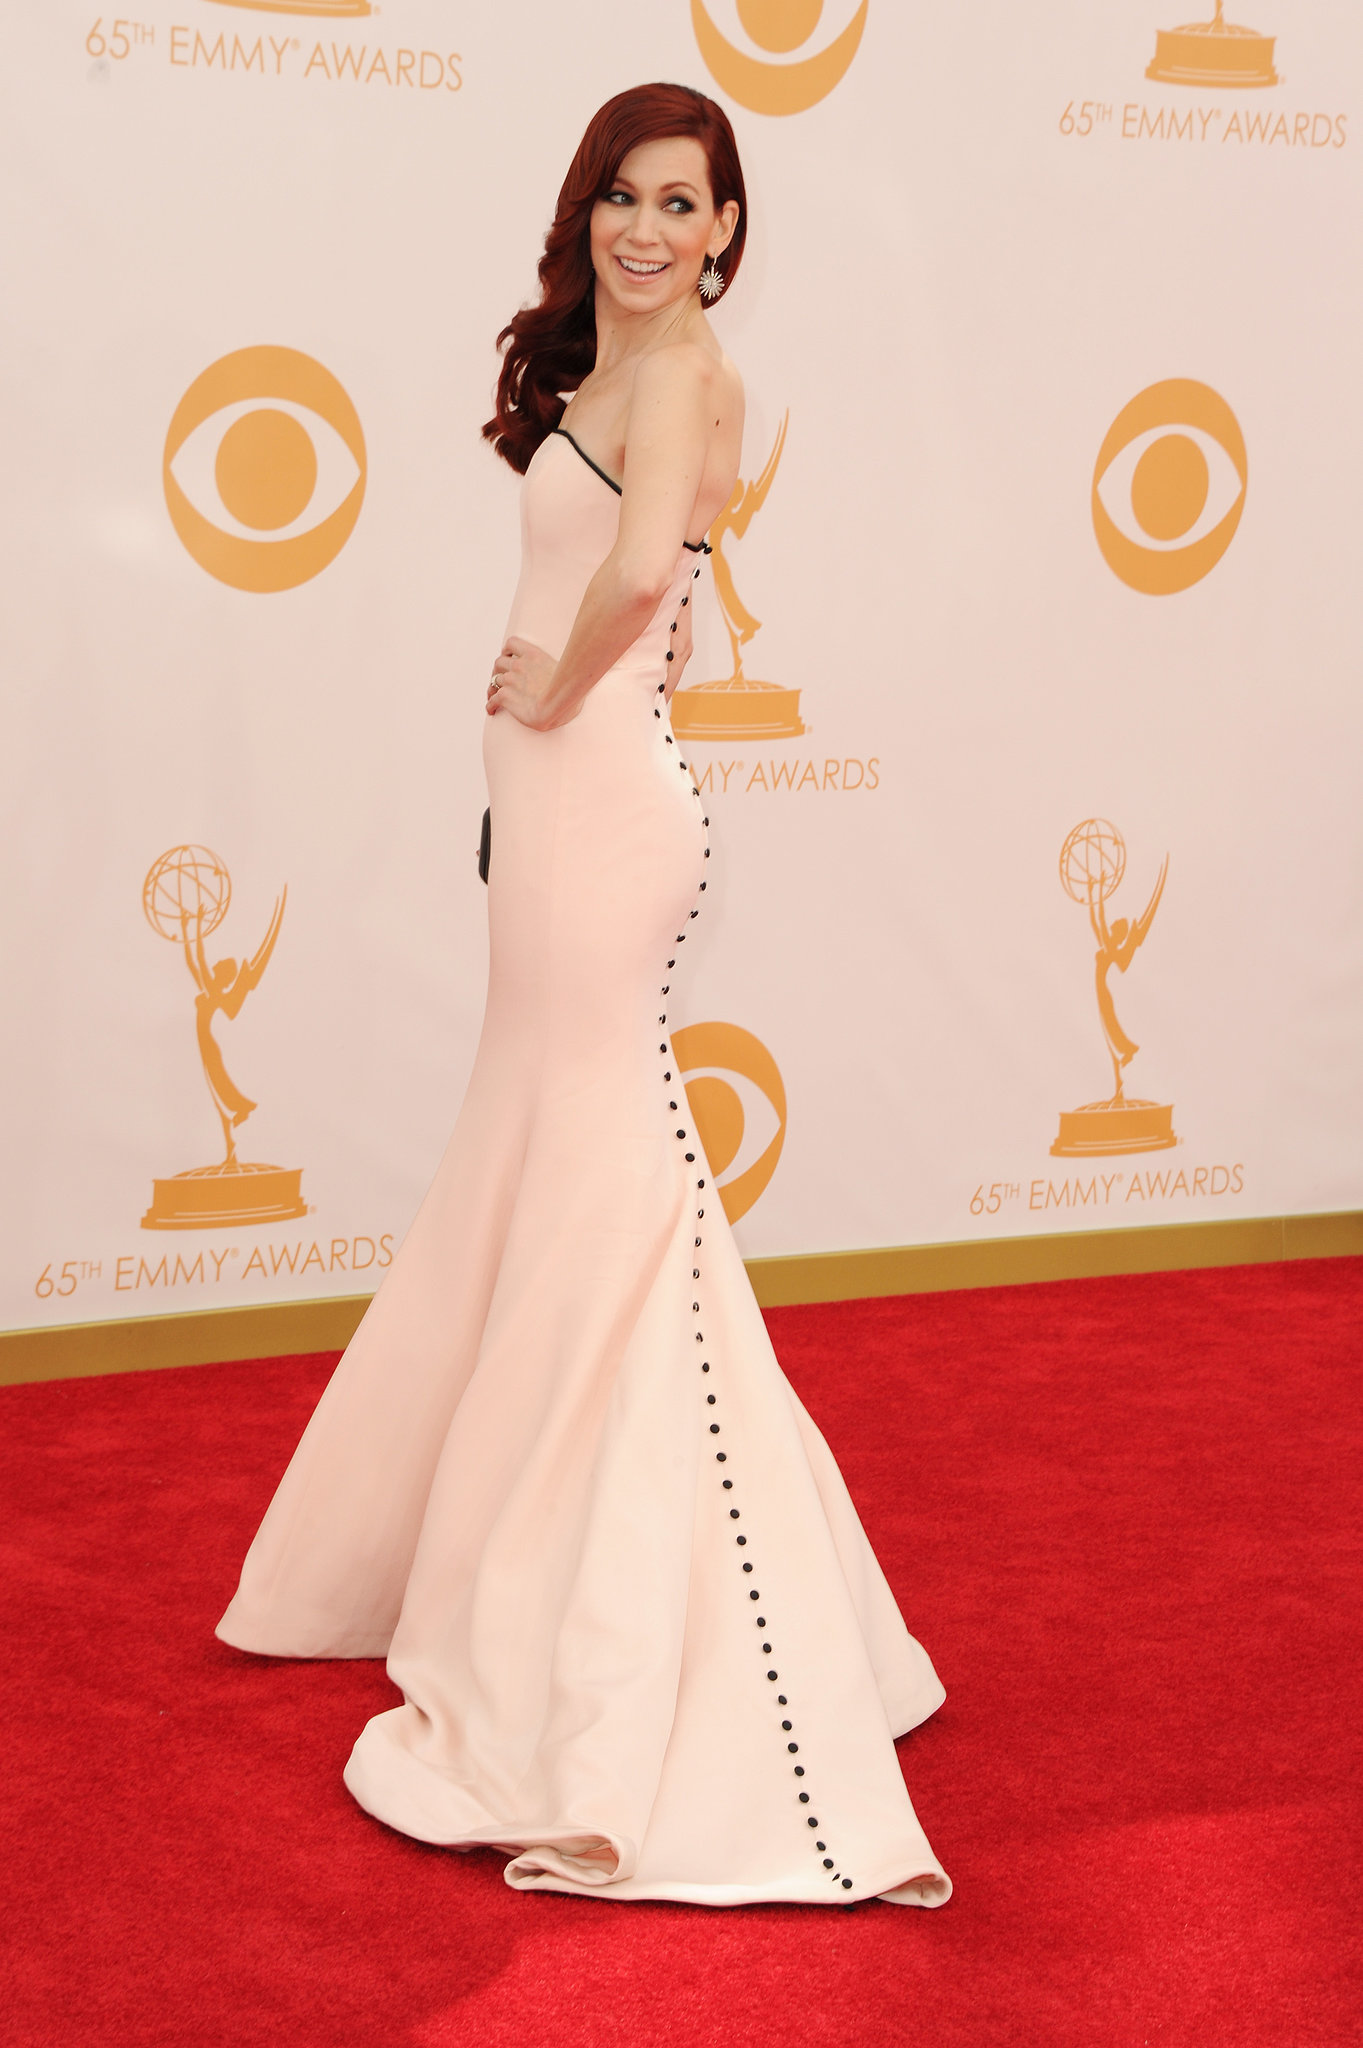 It was all about the rear view for Carrie Preston's Romona Caveza dress. The pale pink color and train were accented by a long row of buttons.